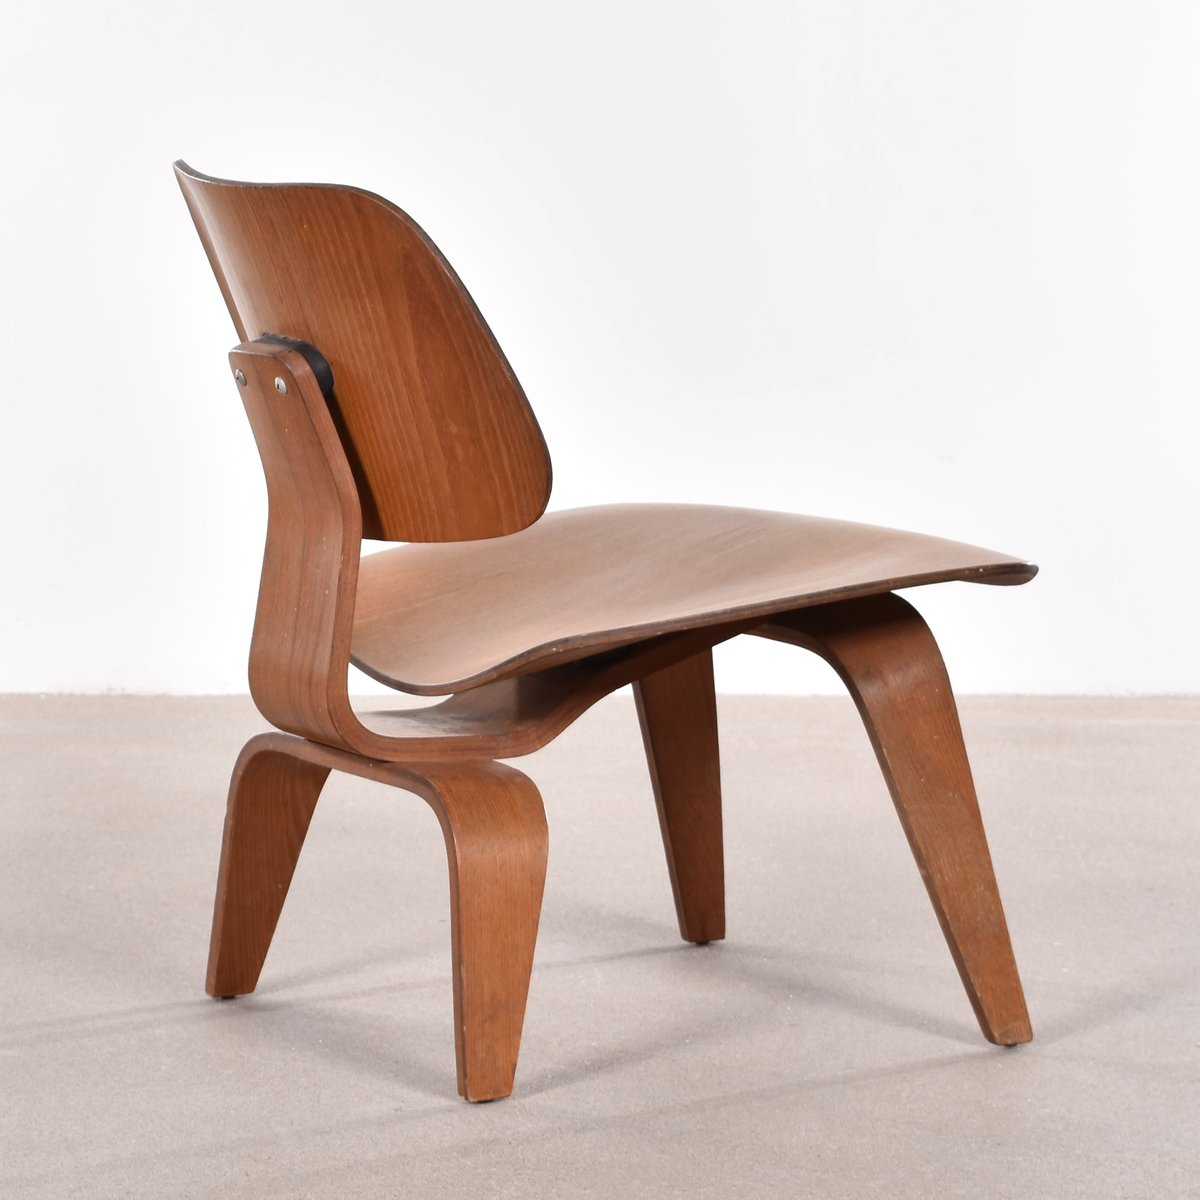 Sessel Eames charles eames sessel lounge chair mit ottoman eames with charles